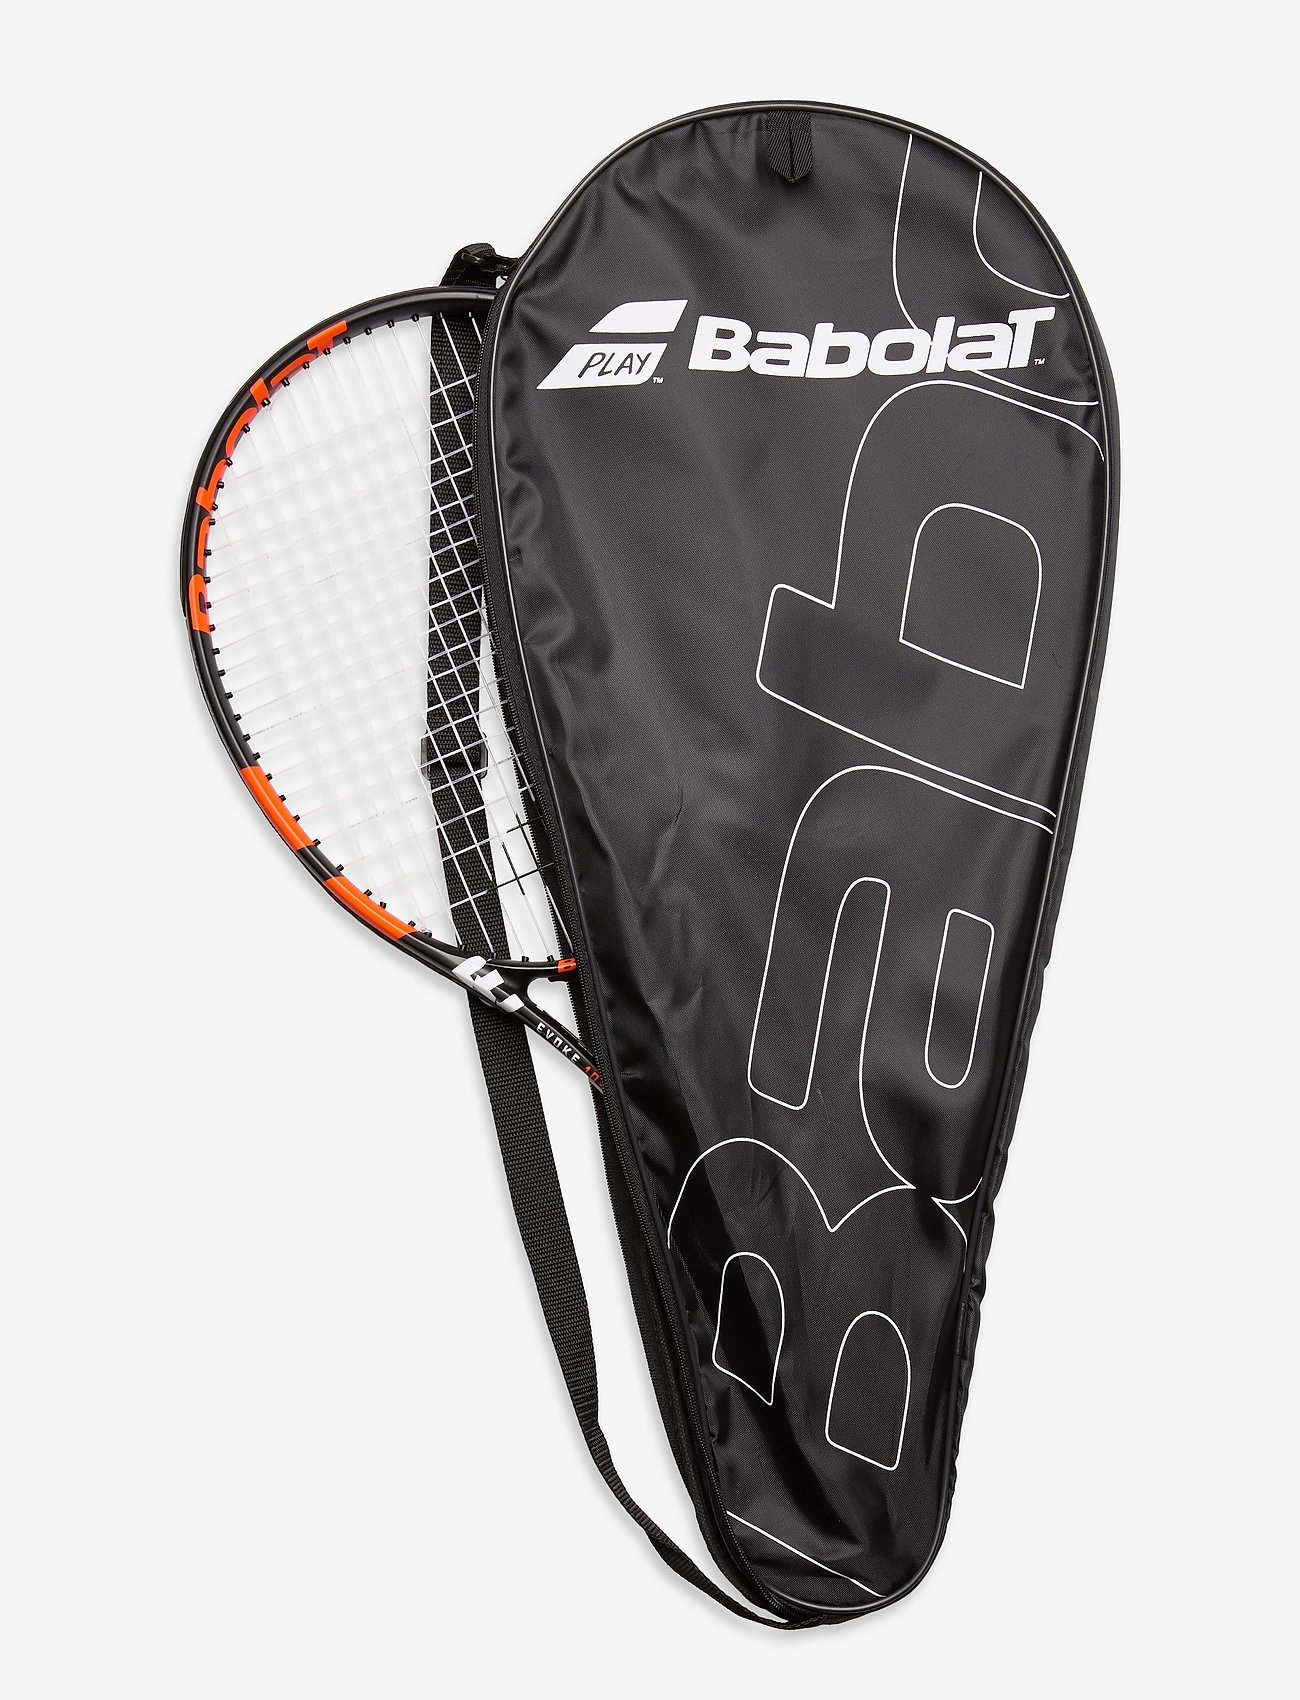 Babolat - EVOKE 105 STRUNG - tennisrackets - 162 black orange - 1